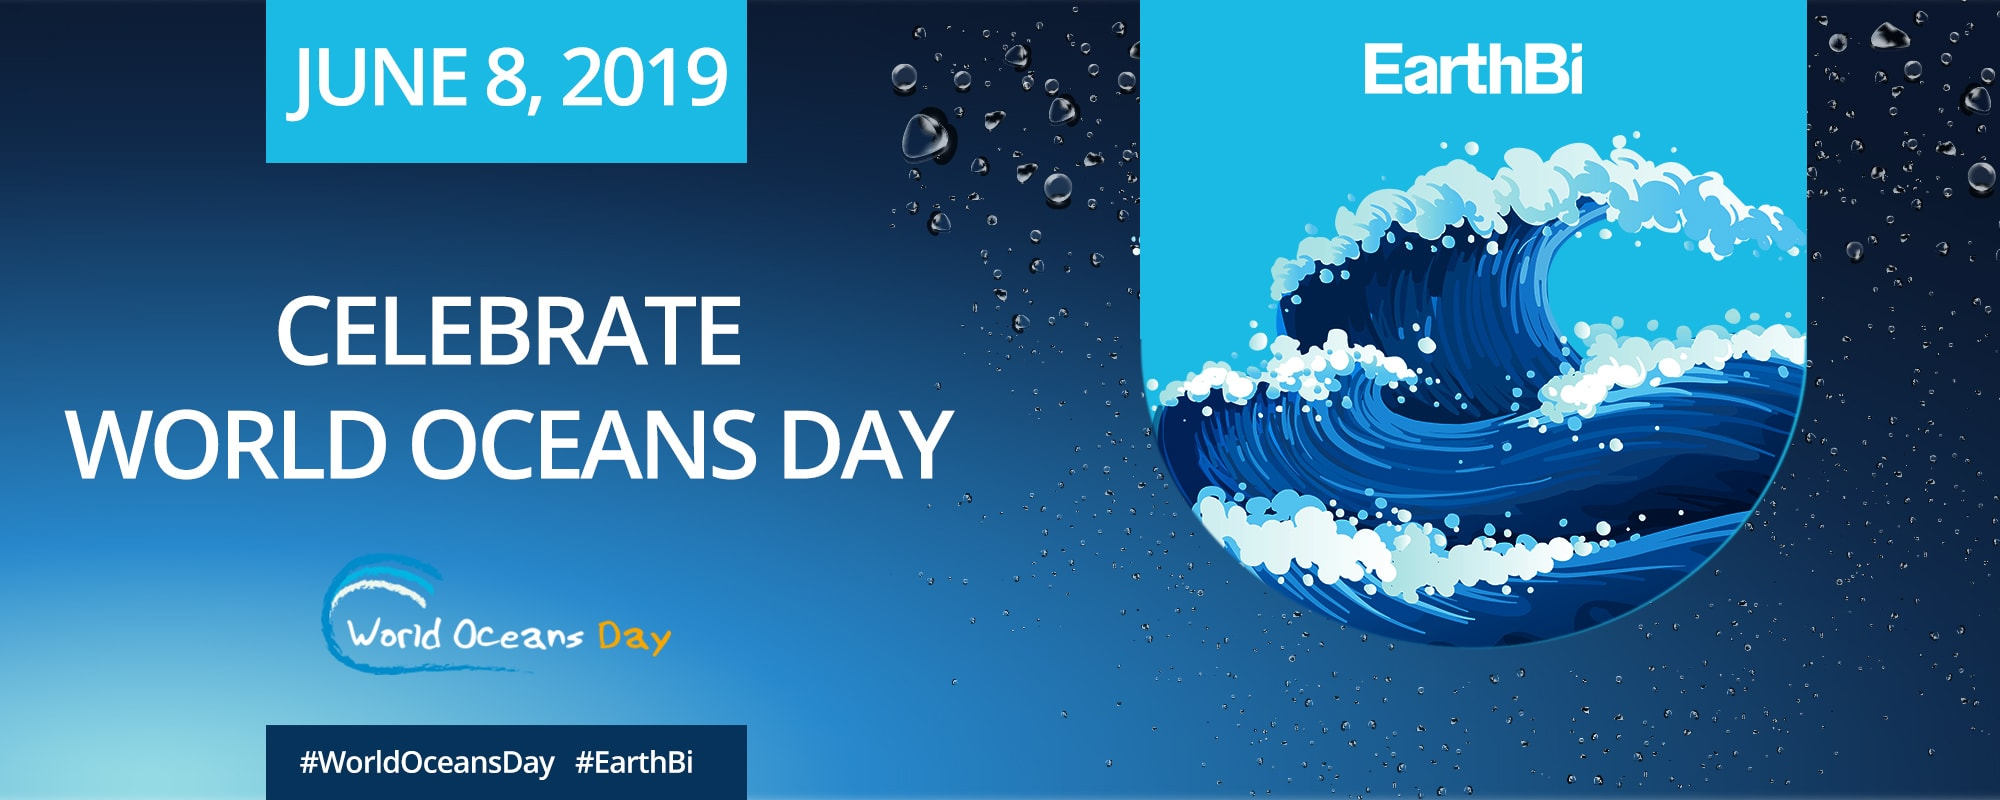 ocean world day 2019